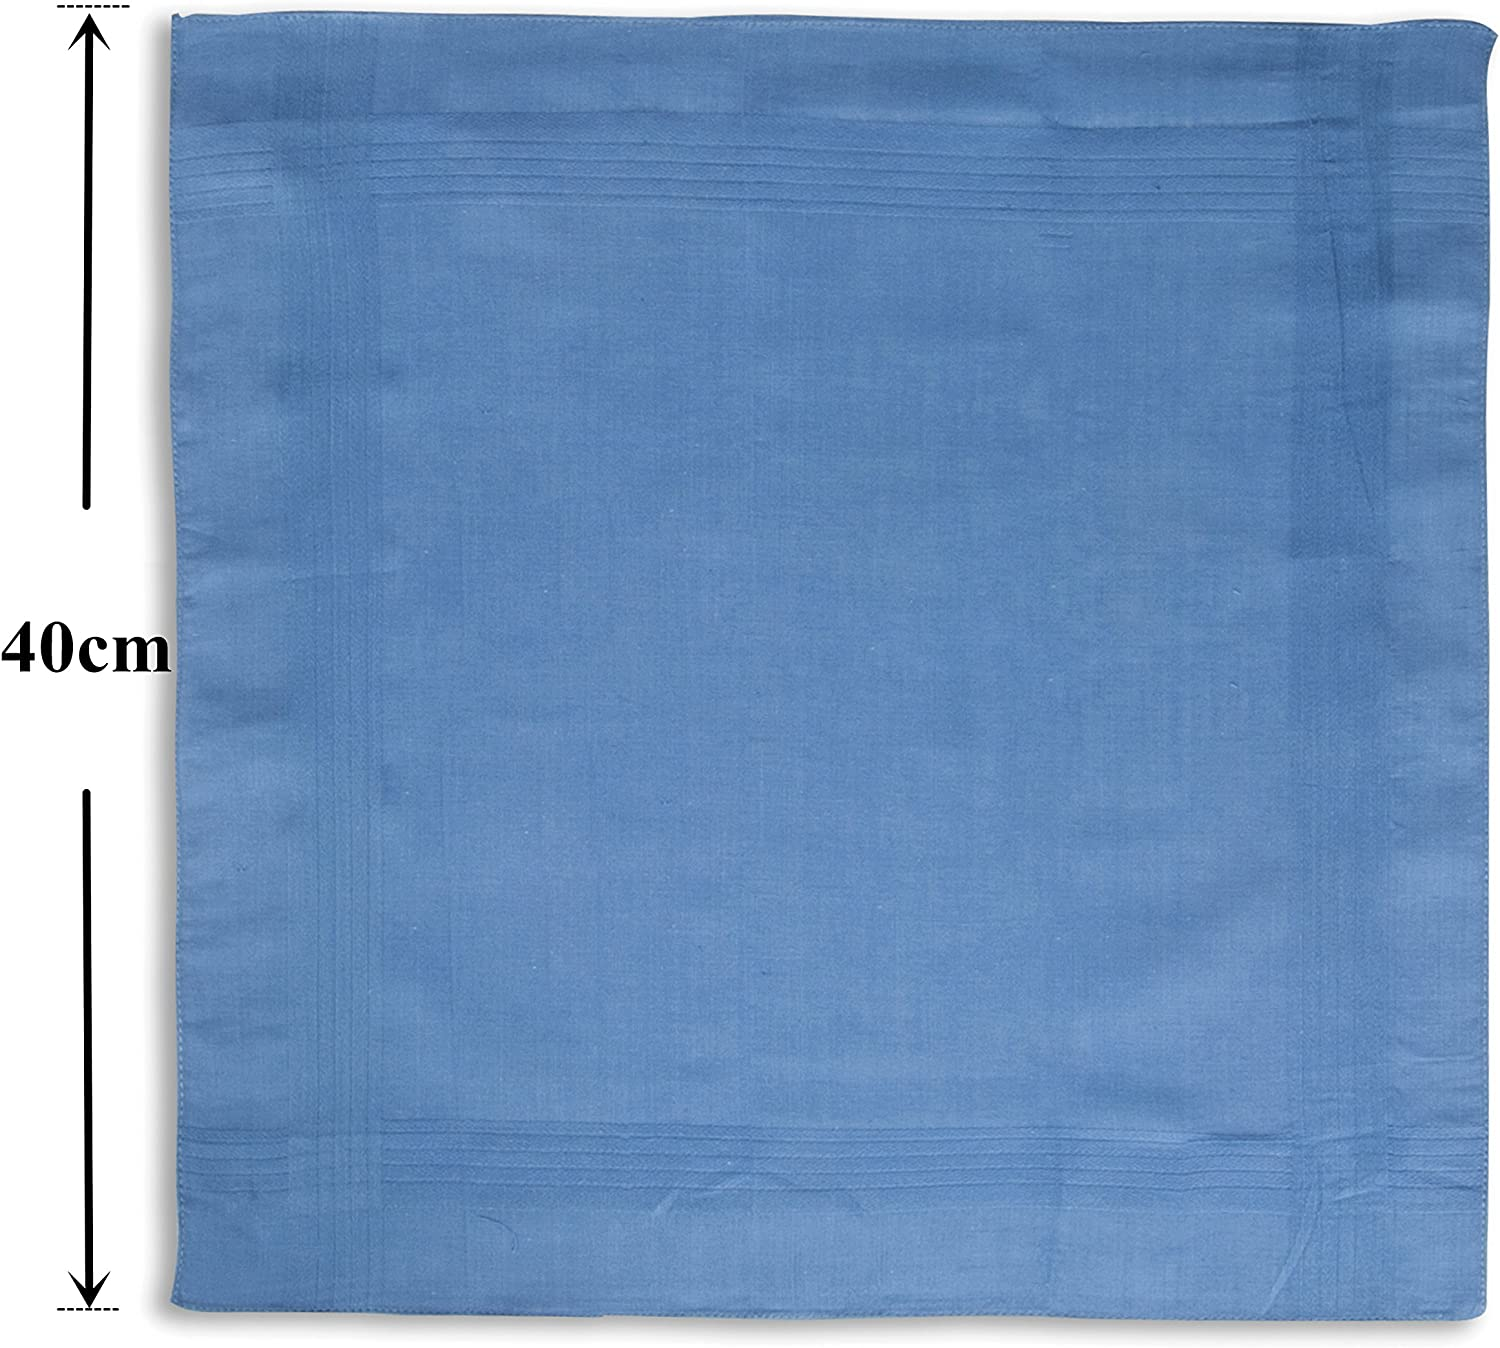 LULUSILK 100/% Pure Cotton Handkerchiefs with Stiching Assorted Color